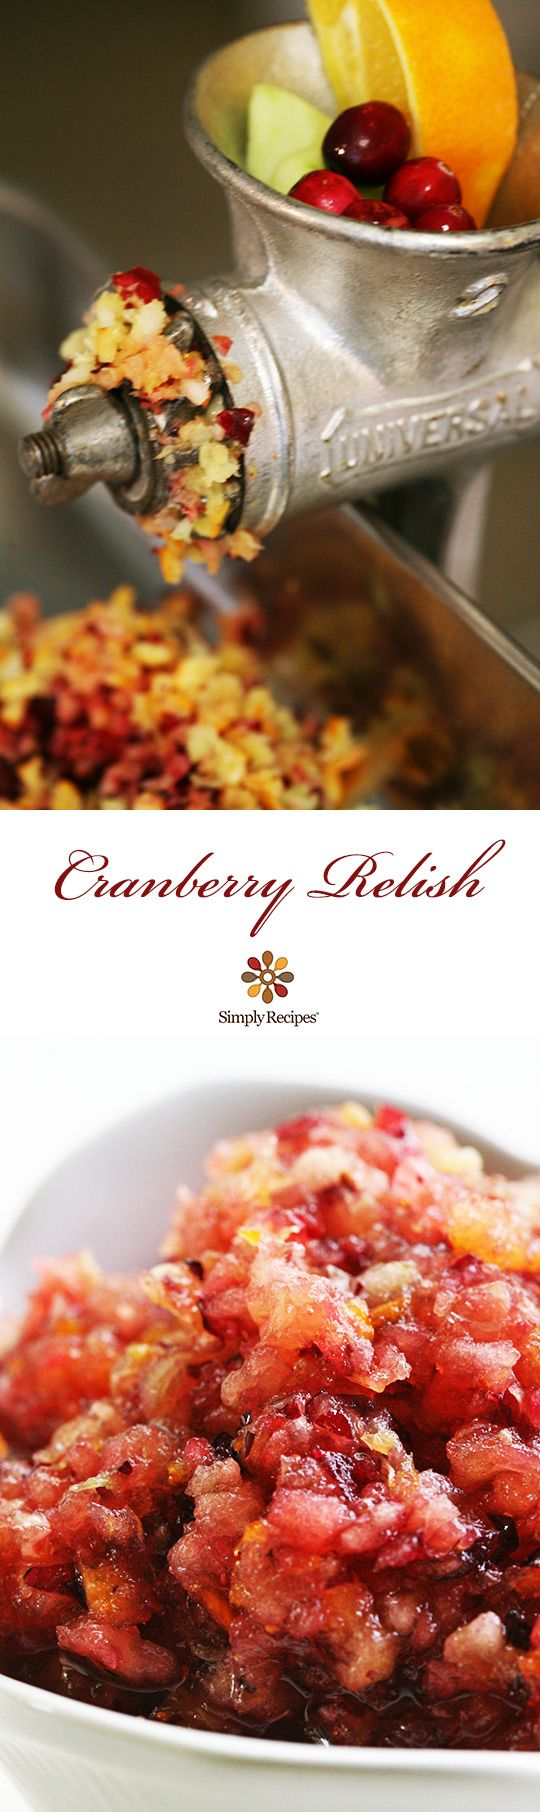 Holiday and Thanksgiving raw Cranberry Relish—fresh cranberries ground up with apples and orange and mixed with sugar. On SimplyRecipes.com